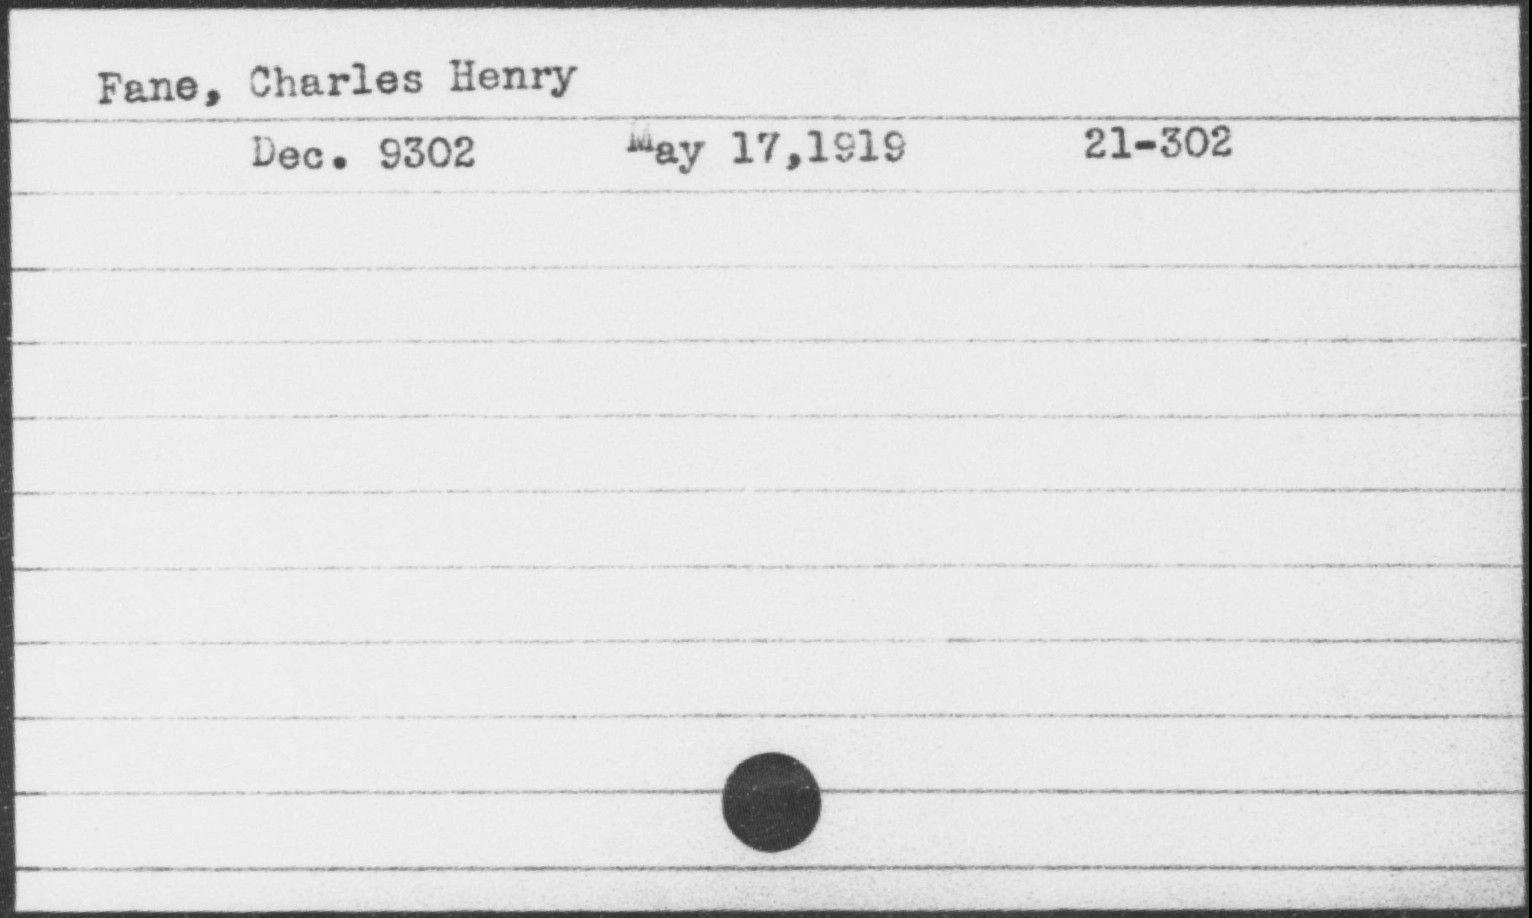 Fane, Charles Henry, Year: [BLANK]